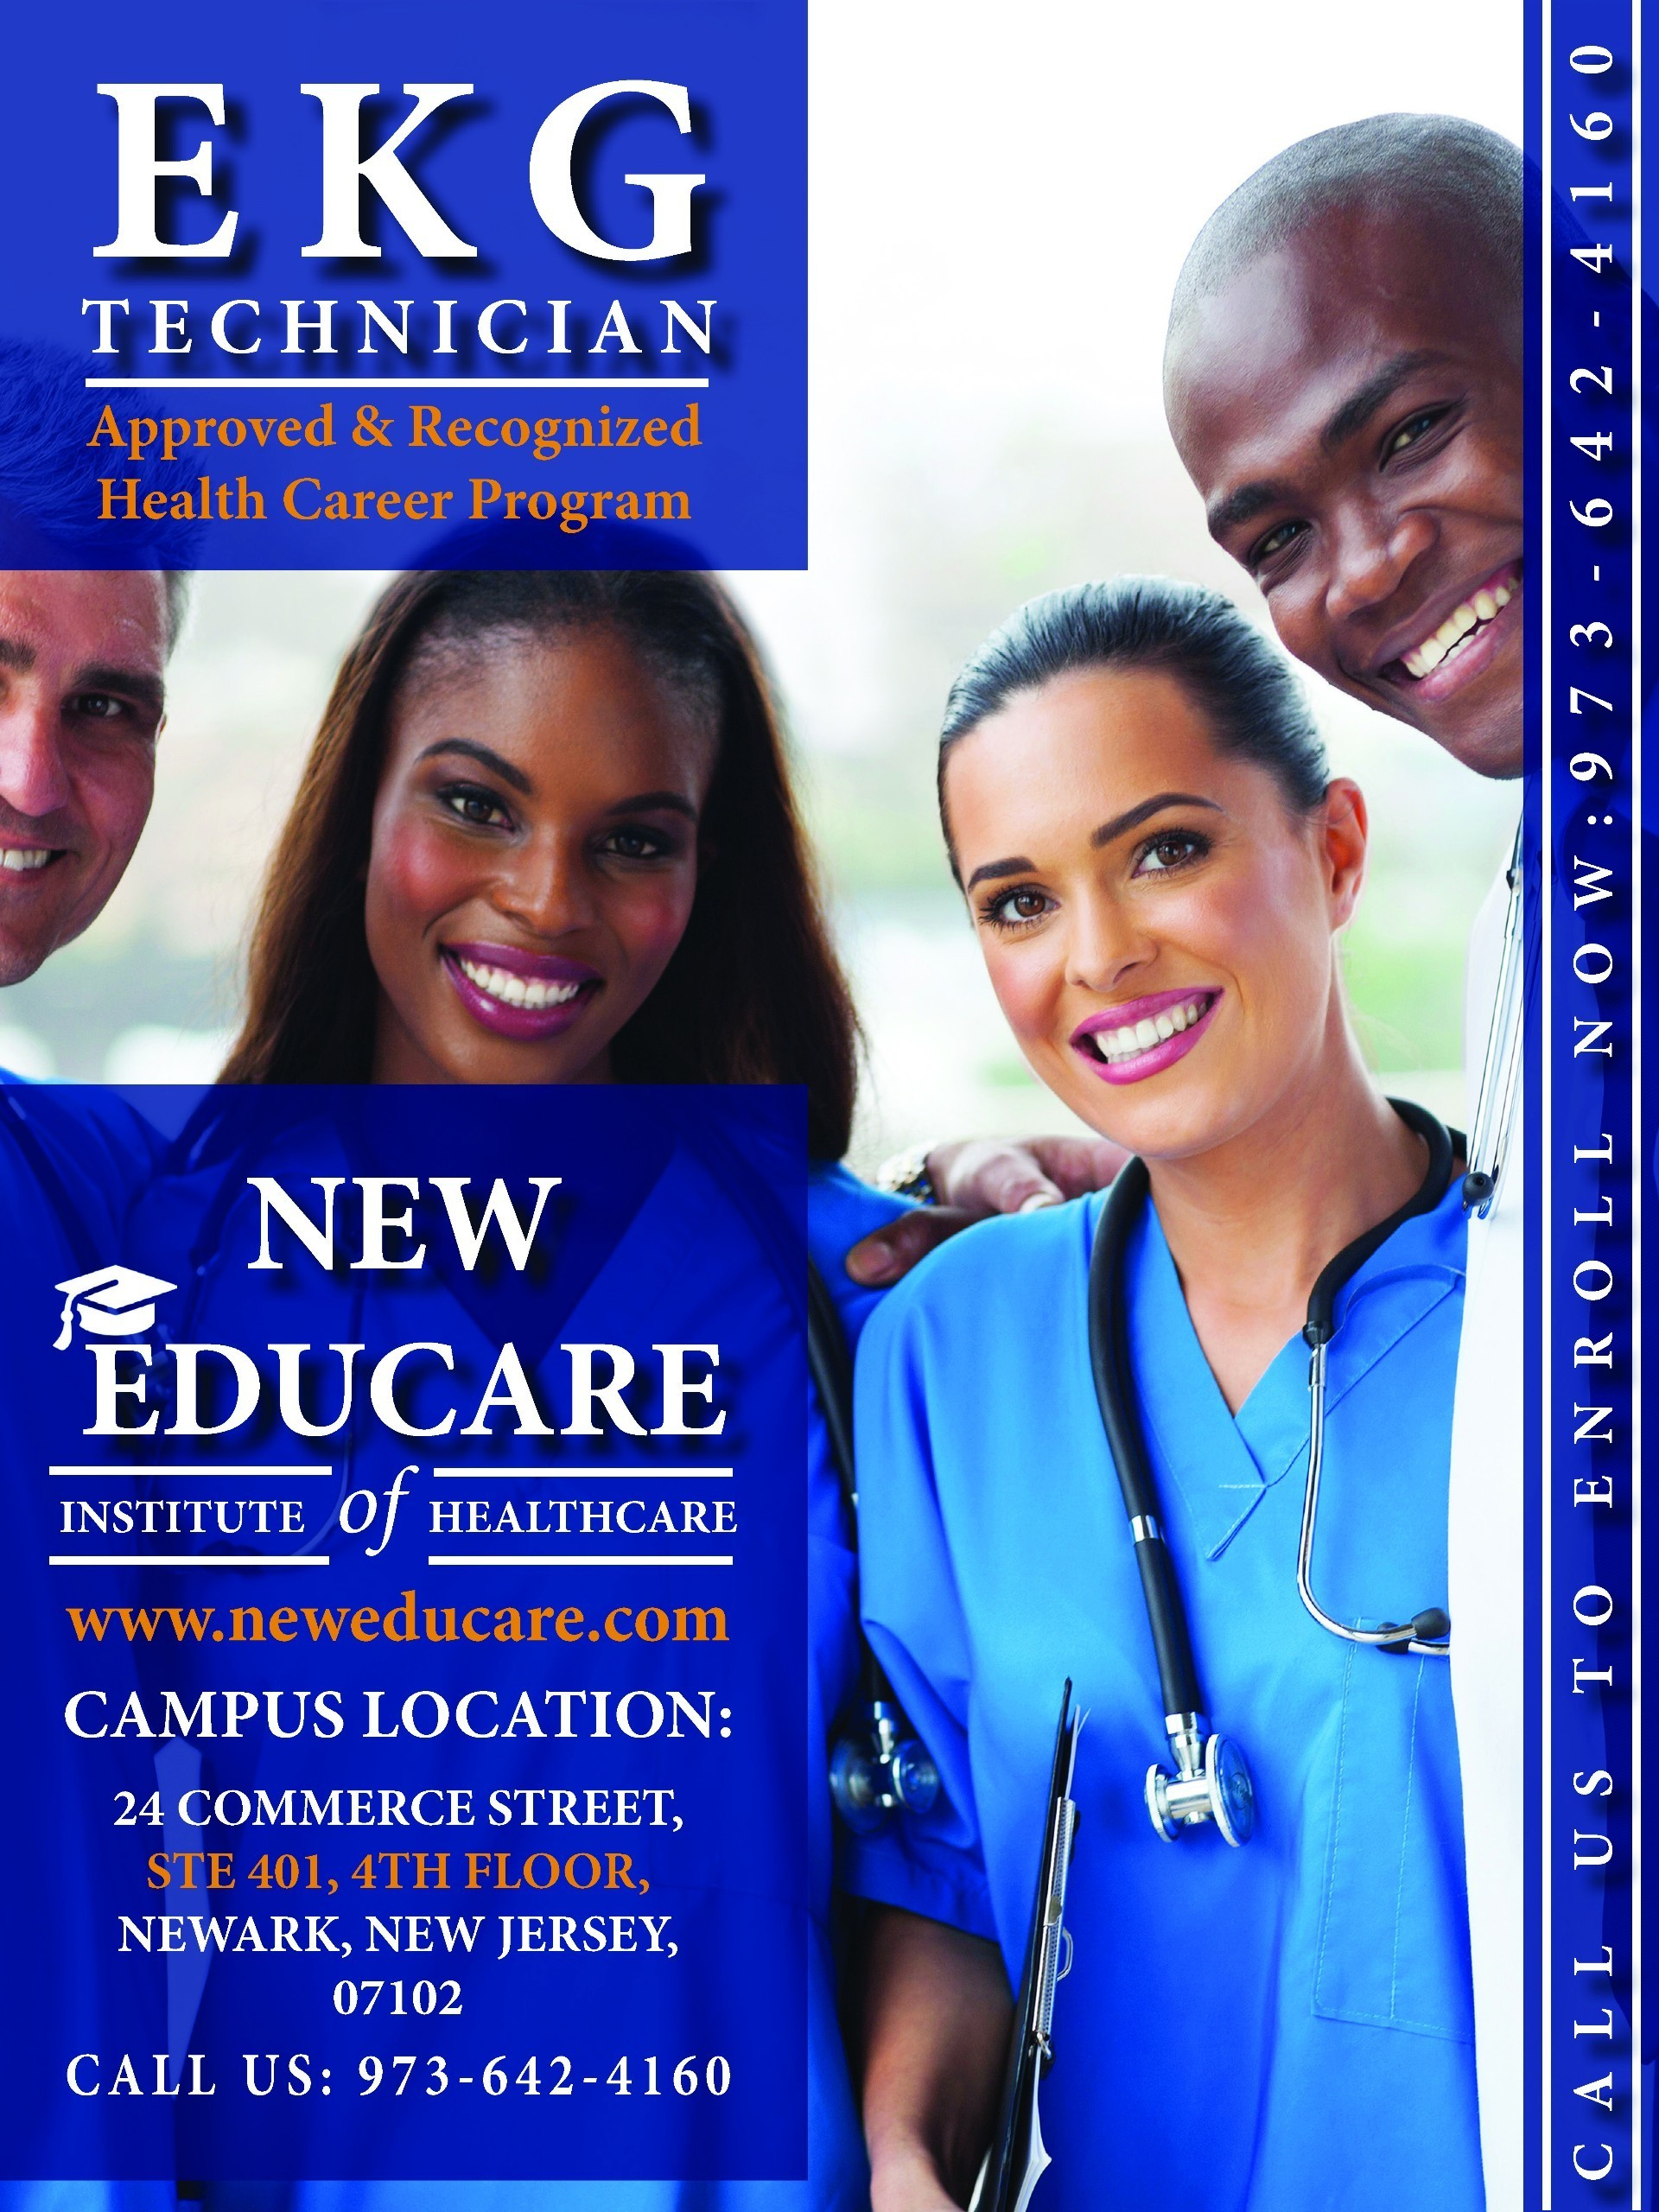 Certified Ekg Technician Training Program In Nj Offered At New